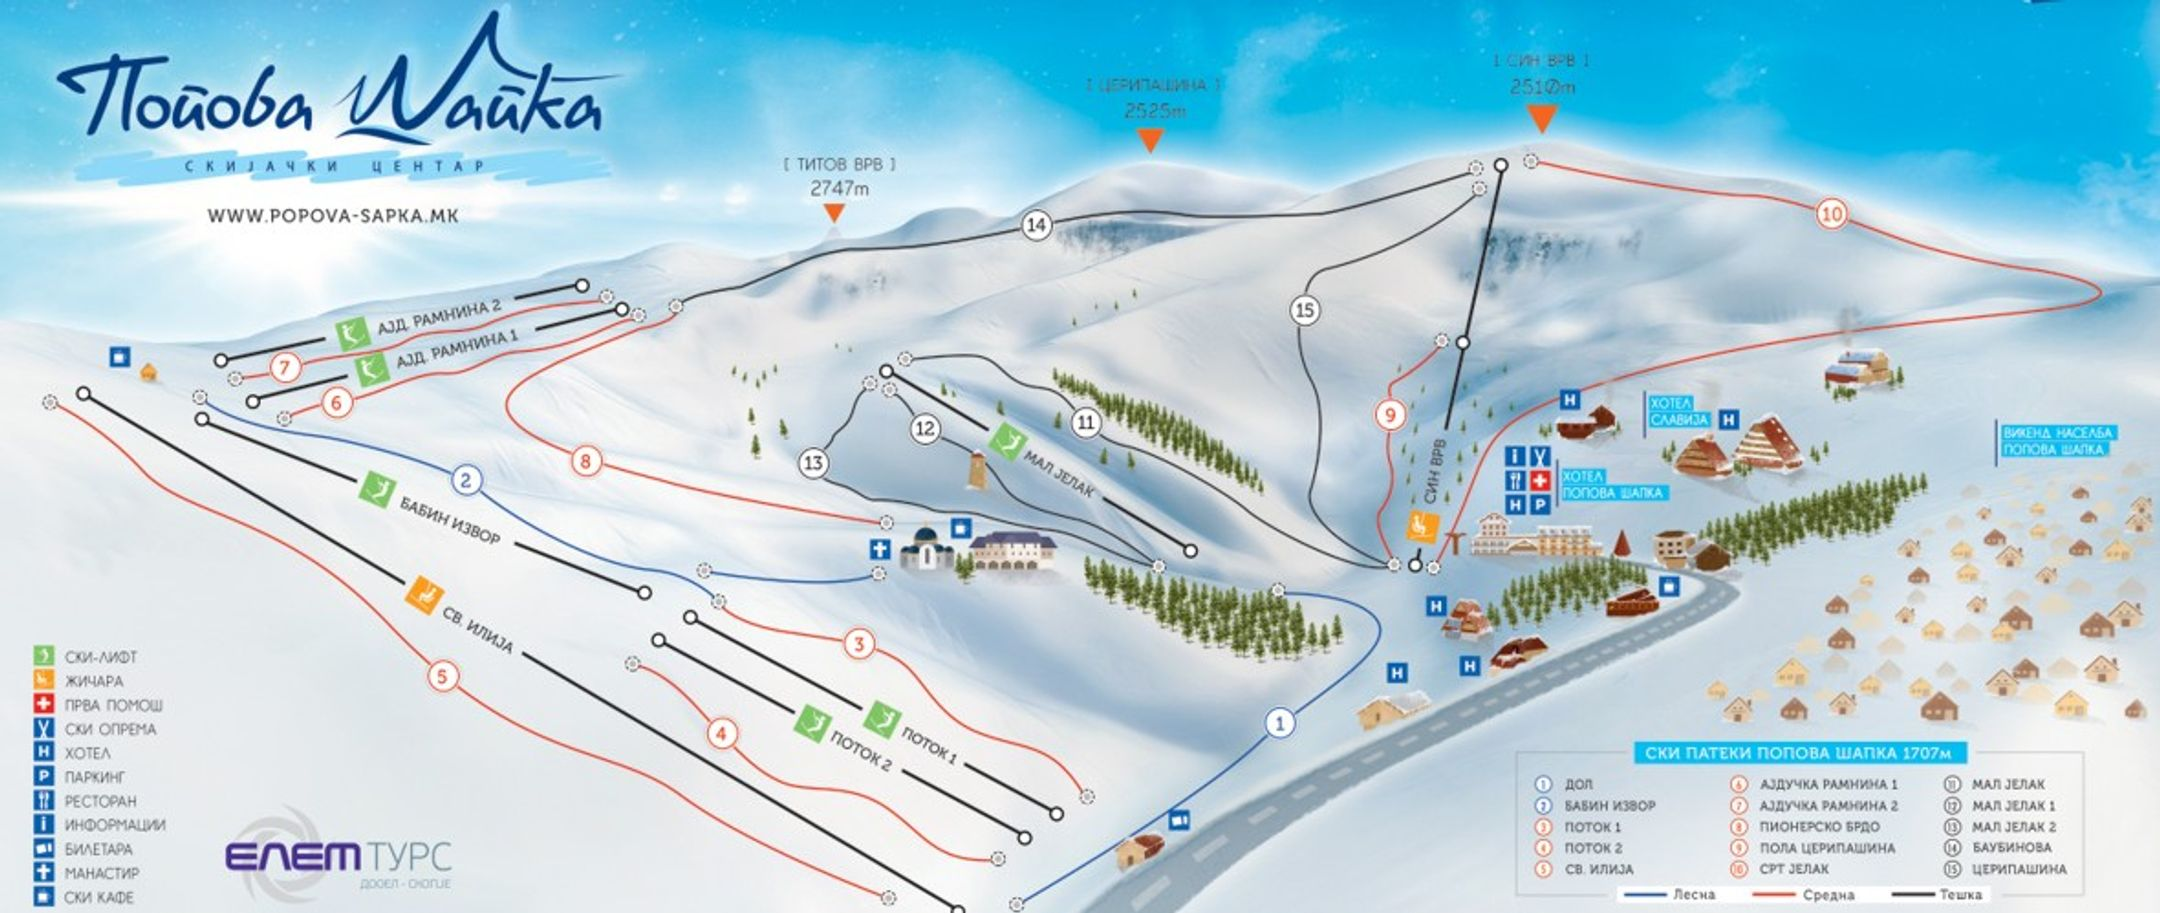 Popova Sapka ski-resort-trail-map Macedonia ripatrip